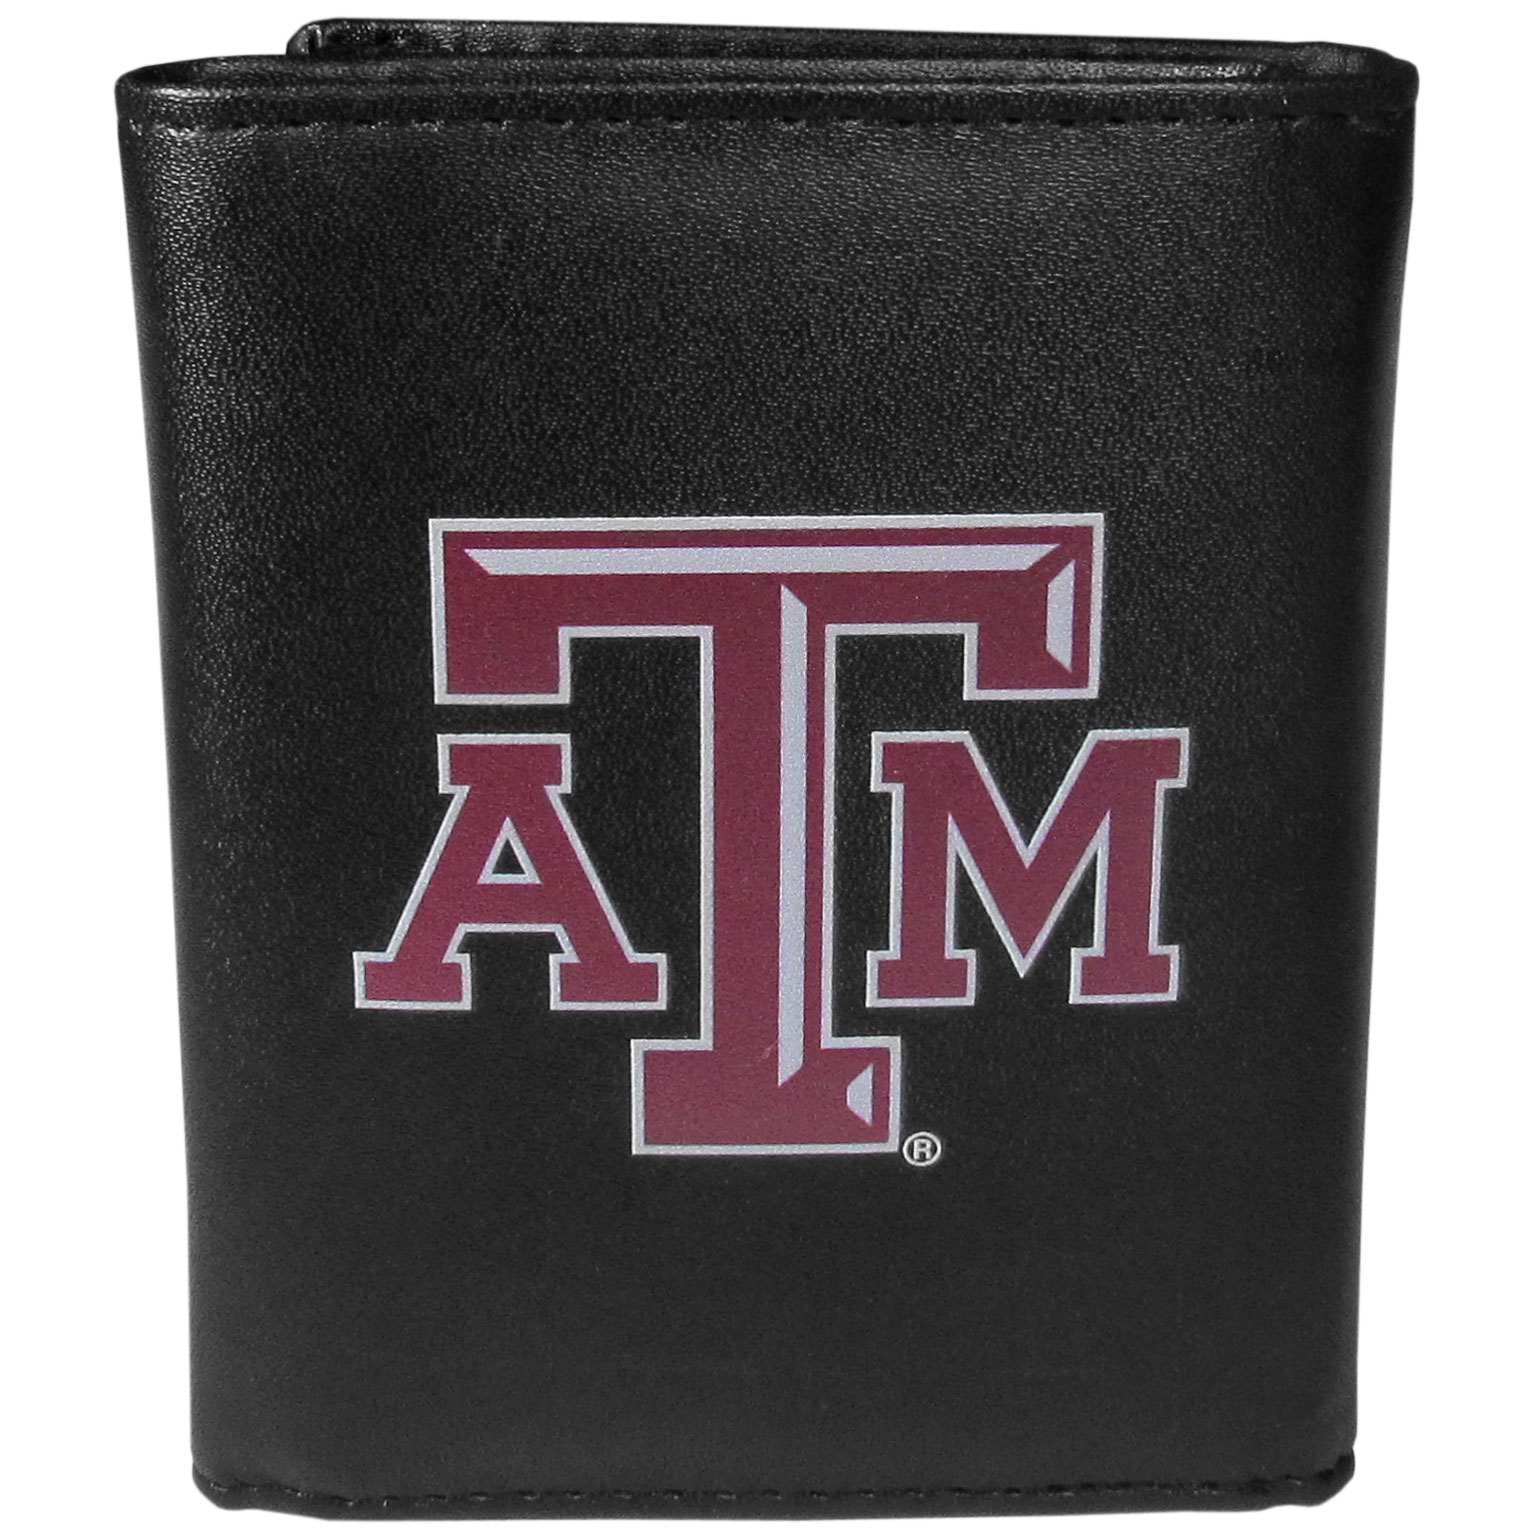 Texas A and M Aggies Leather Tri-fold Wallet, Large Logo - Our classic fine leather tri-fold wallet is meticulously crafted with genuine leather that will age beautifully so you will have a quality wallet for years to come. This is fan apparel at its finest. The wallet is packed with organizational  features; lots of credit card slots, large billfold pocket, and a window ID slot. The front of the wallet features an extra large Texas A & M Aggies printed logo.